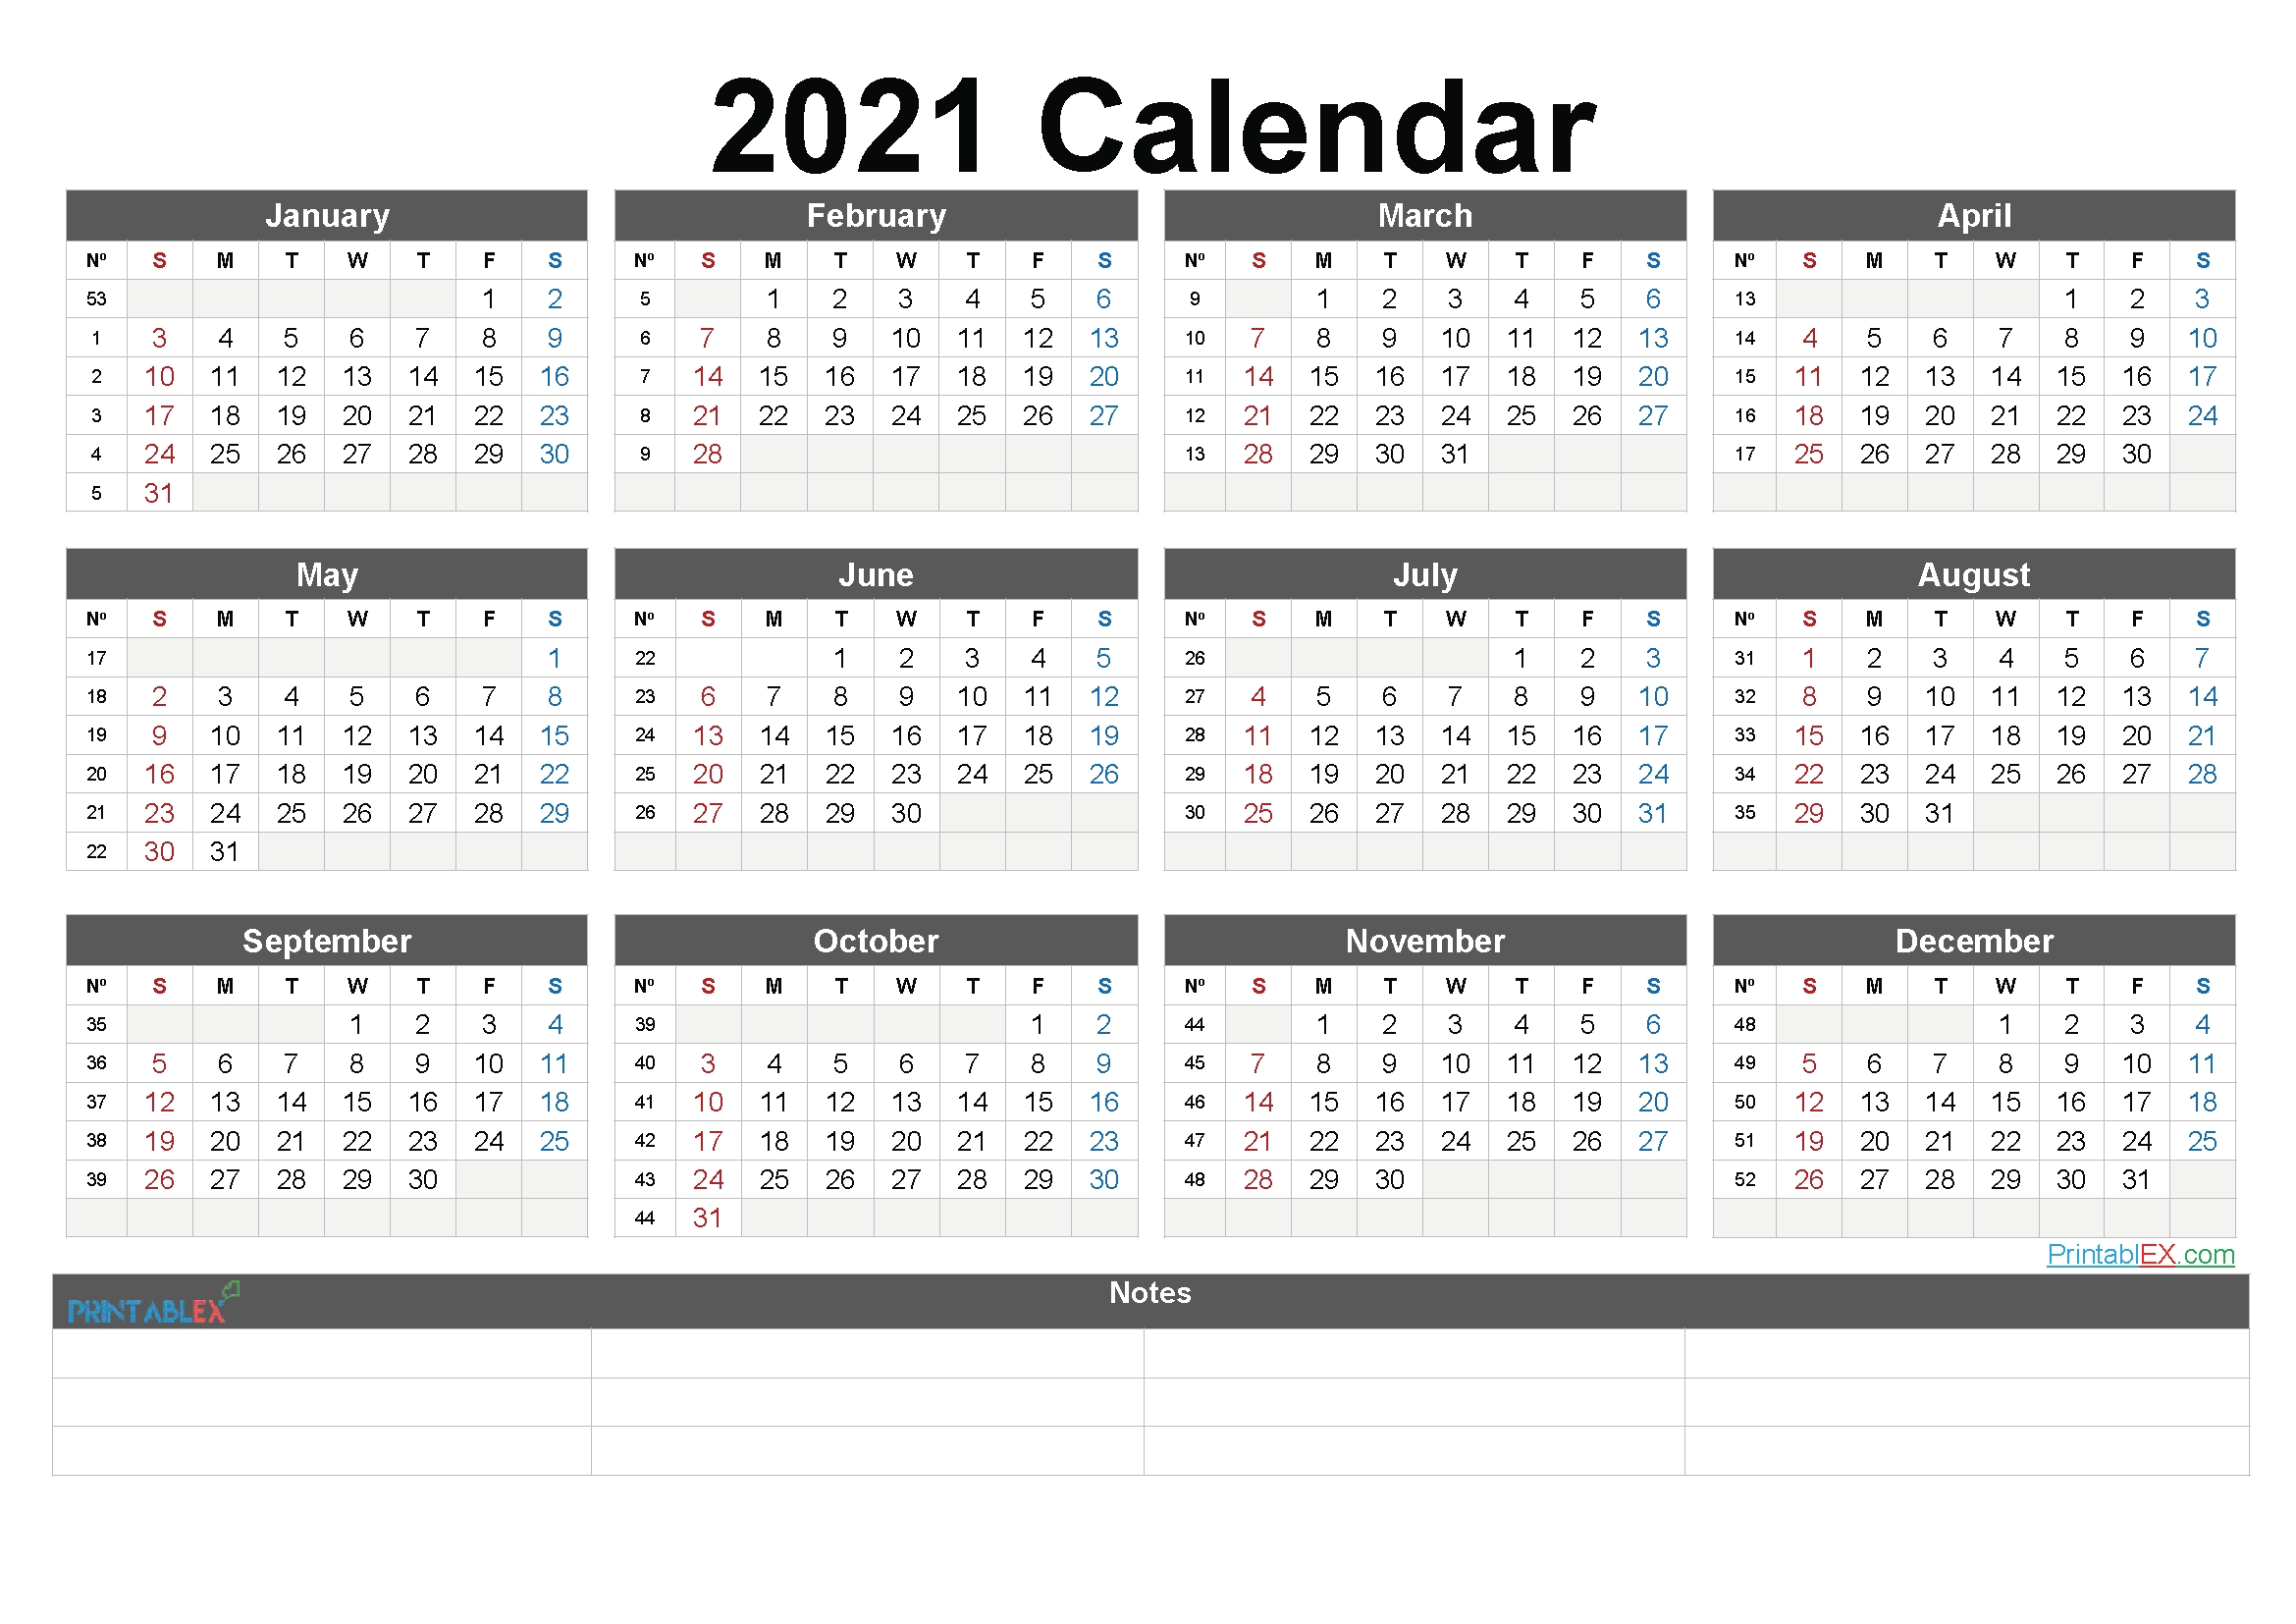 Free Downloadable 2021 Word Calendar - Blank Calendar 2021 Free Download Calendar Templates with Calendar For Year 2021 With Weeks Numbered Graphics